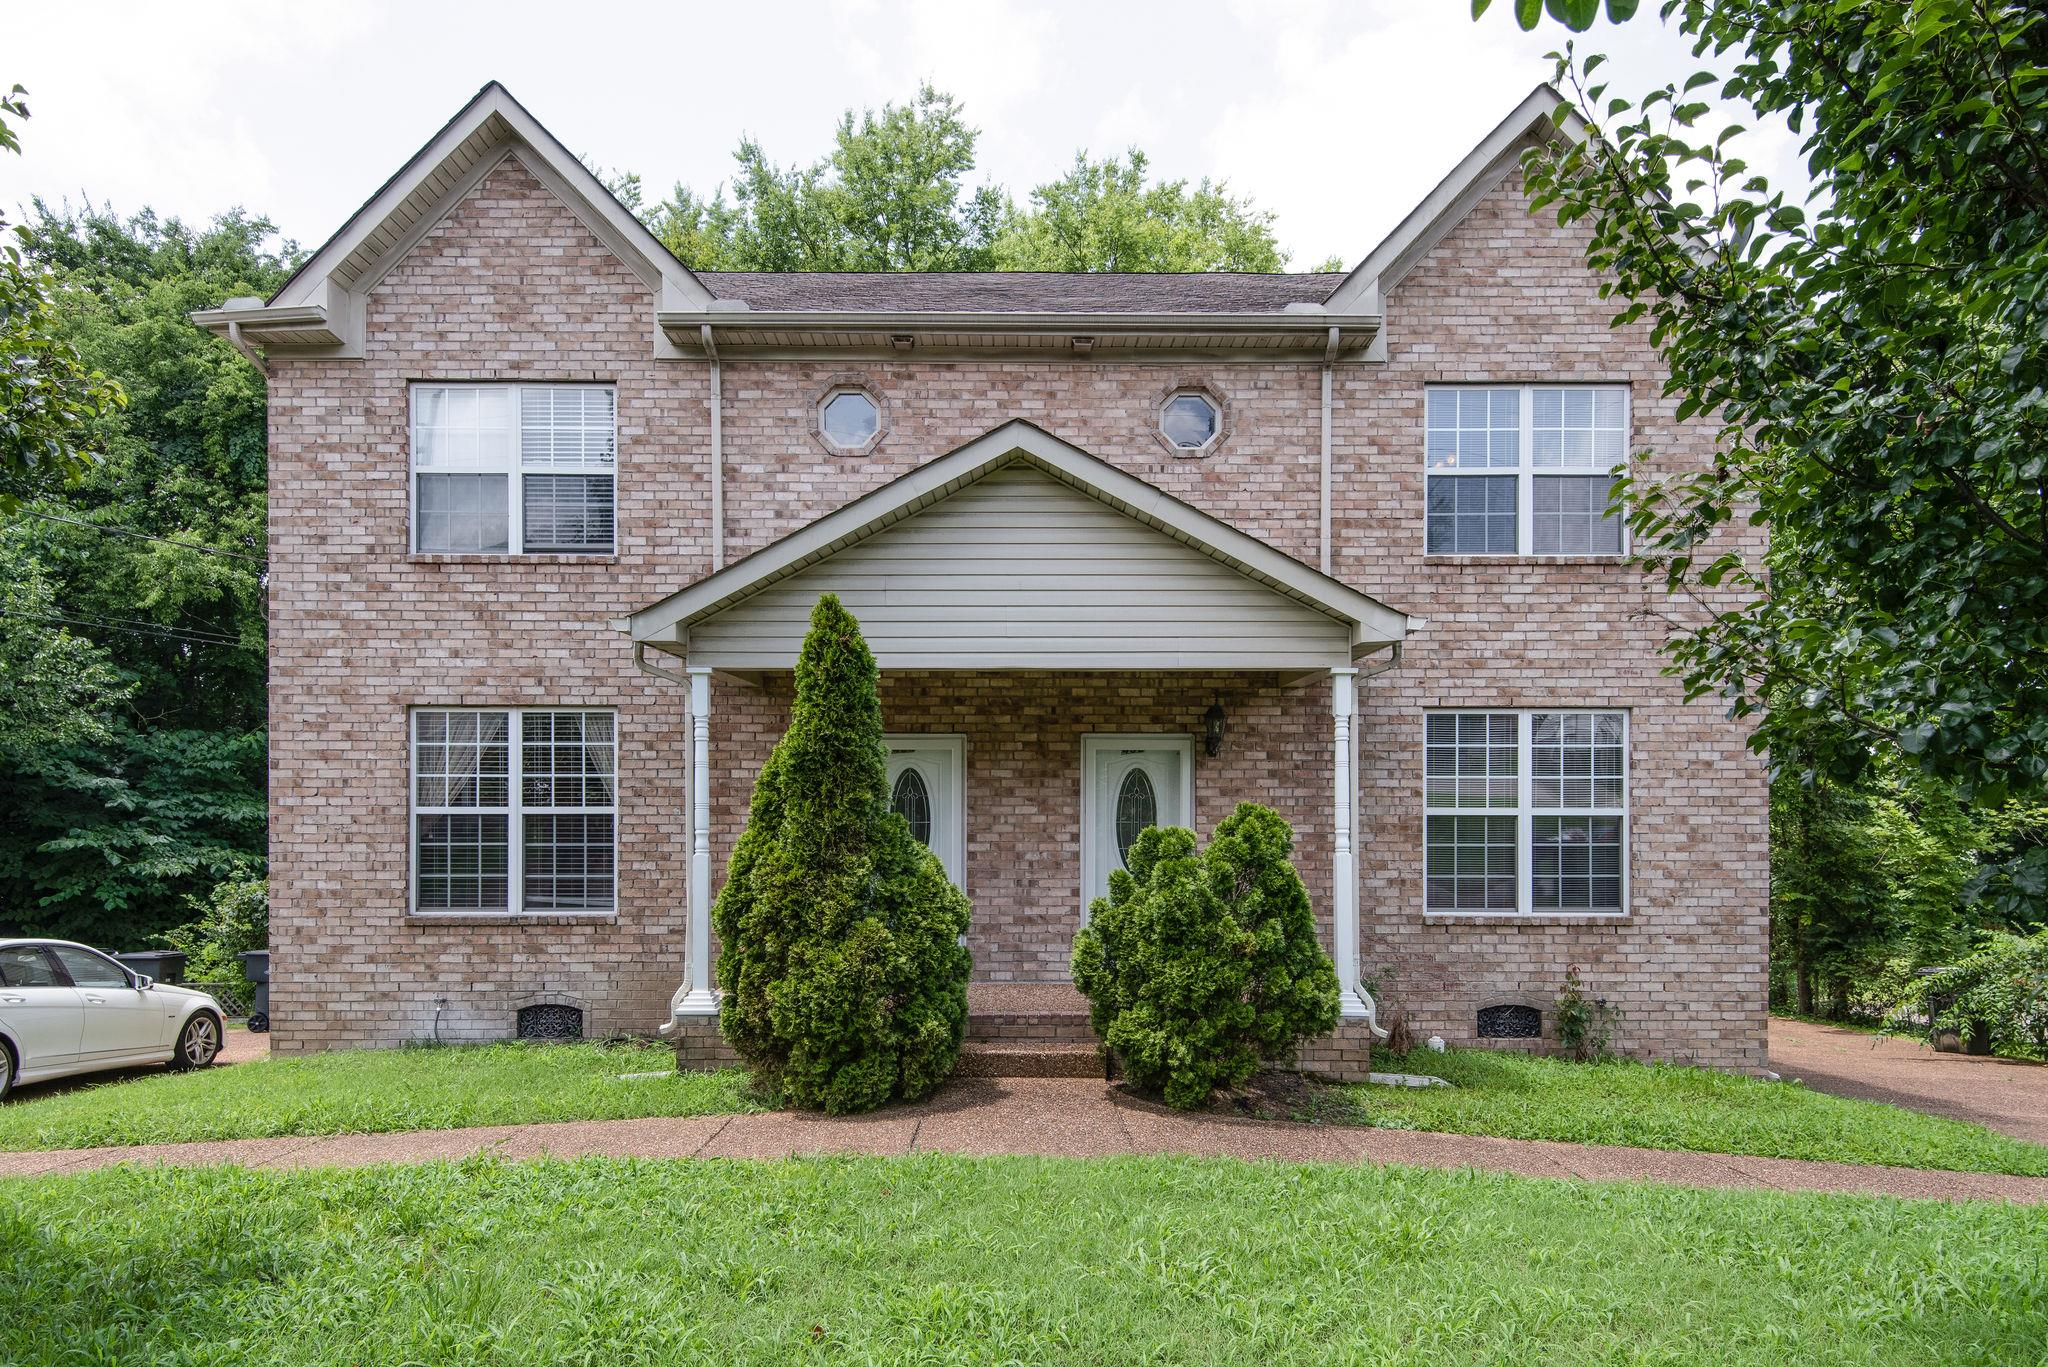 432 Carl Miller Dr, Nashville-Antioch in Davidson County County, TN 37013 Home for Sale